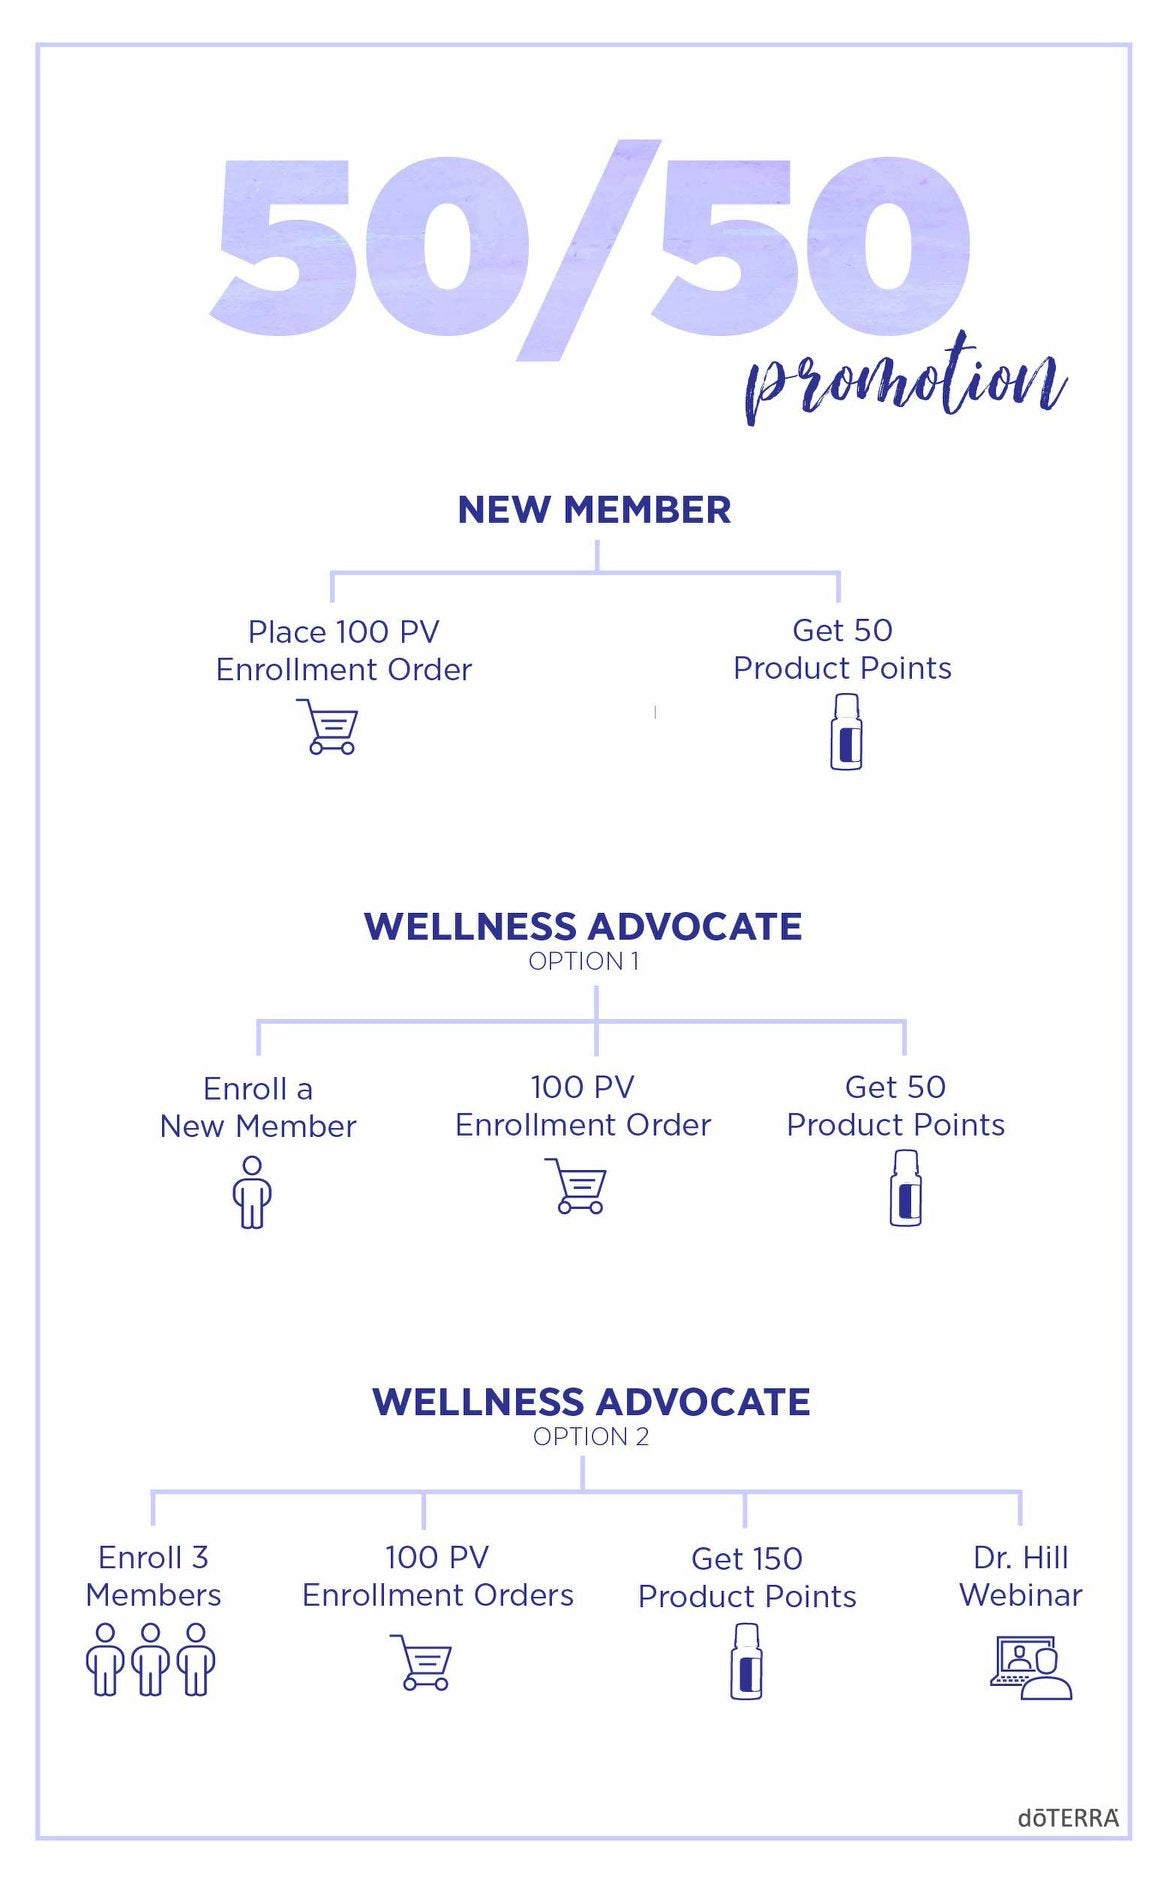 Doterra April 2018 50/50 enrollment promotion